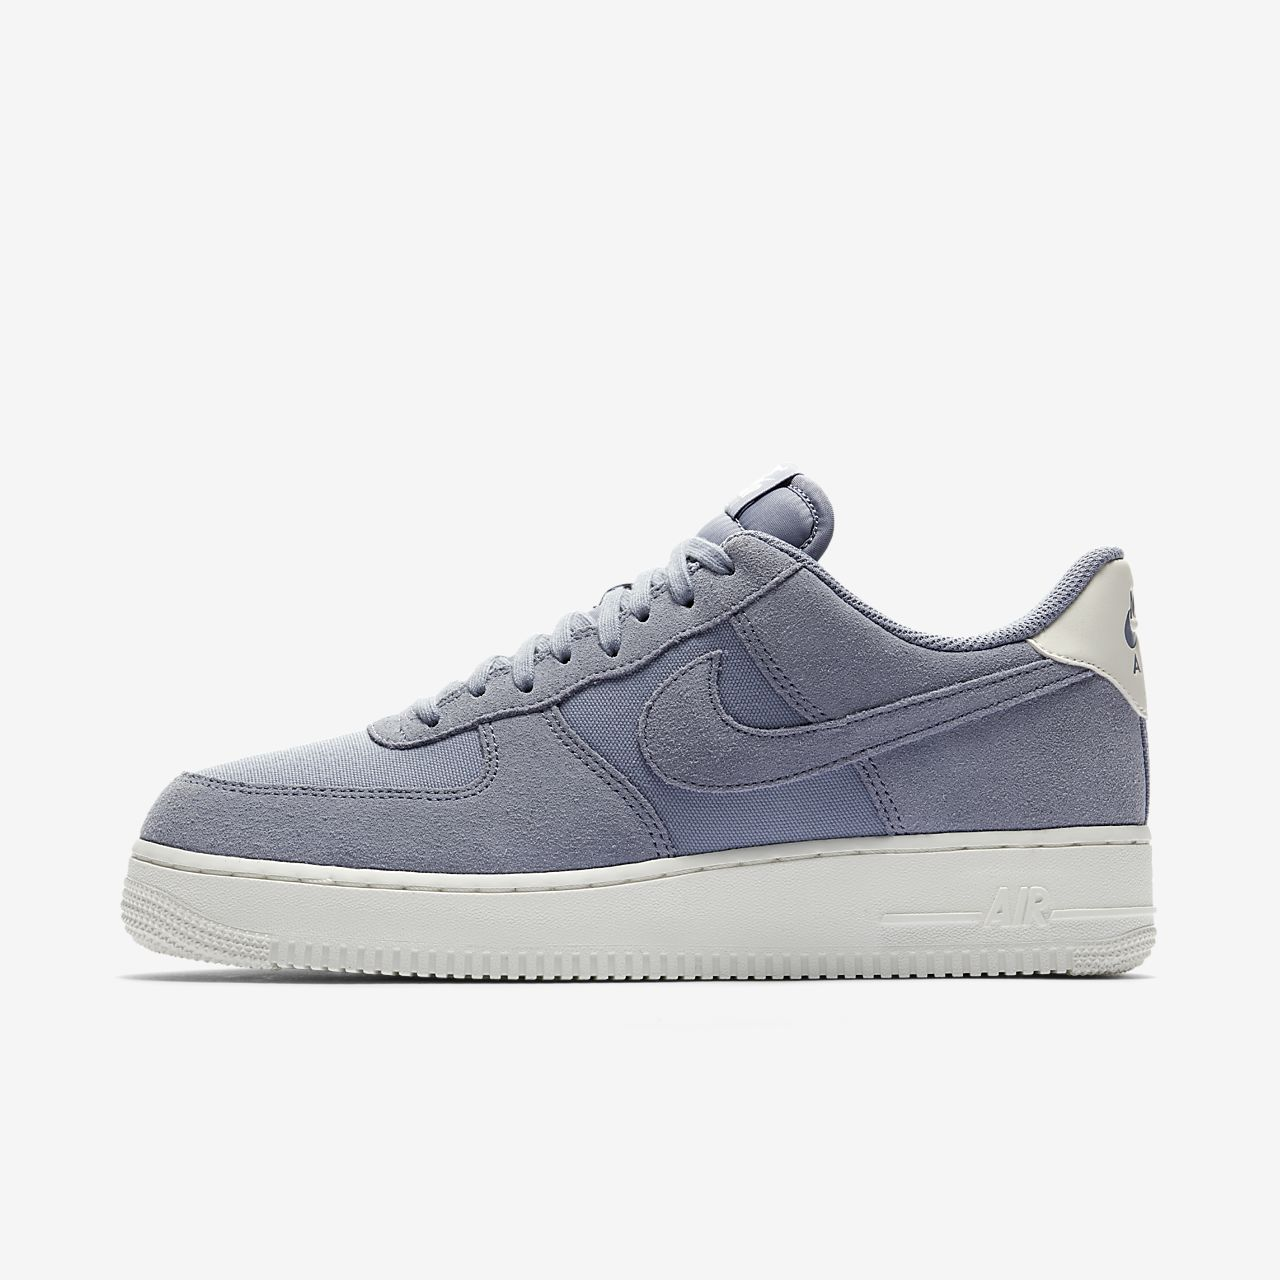 Chaussure Be Nike Suede Pour 1 Force '07 Homme Air rZFd6w8qar